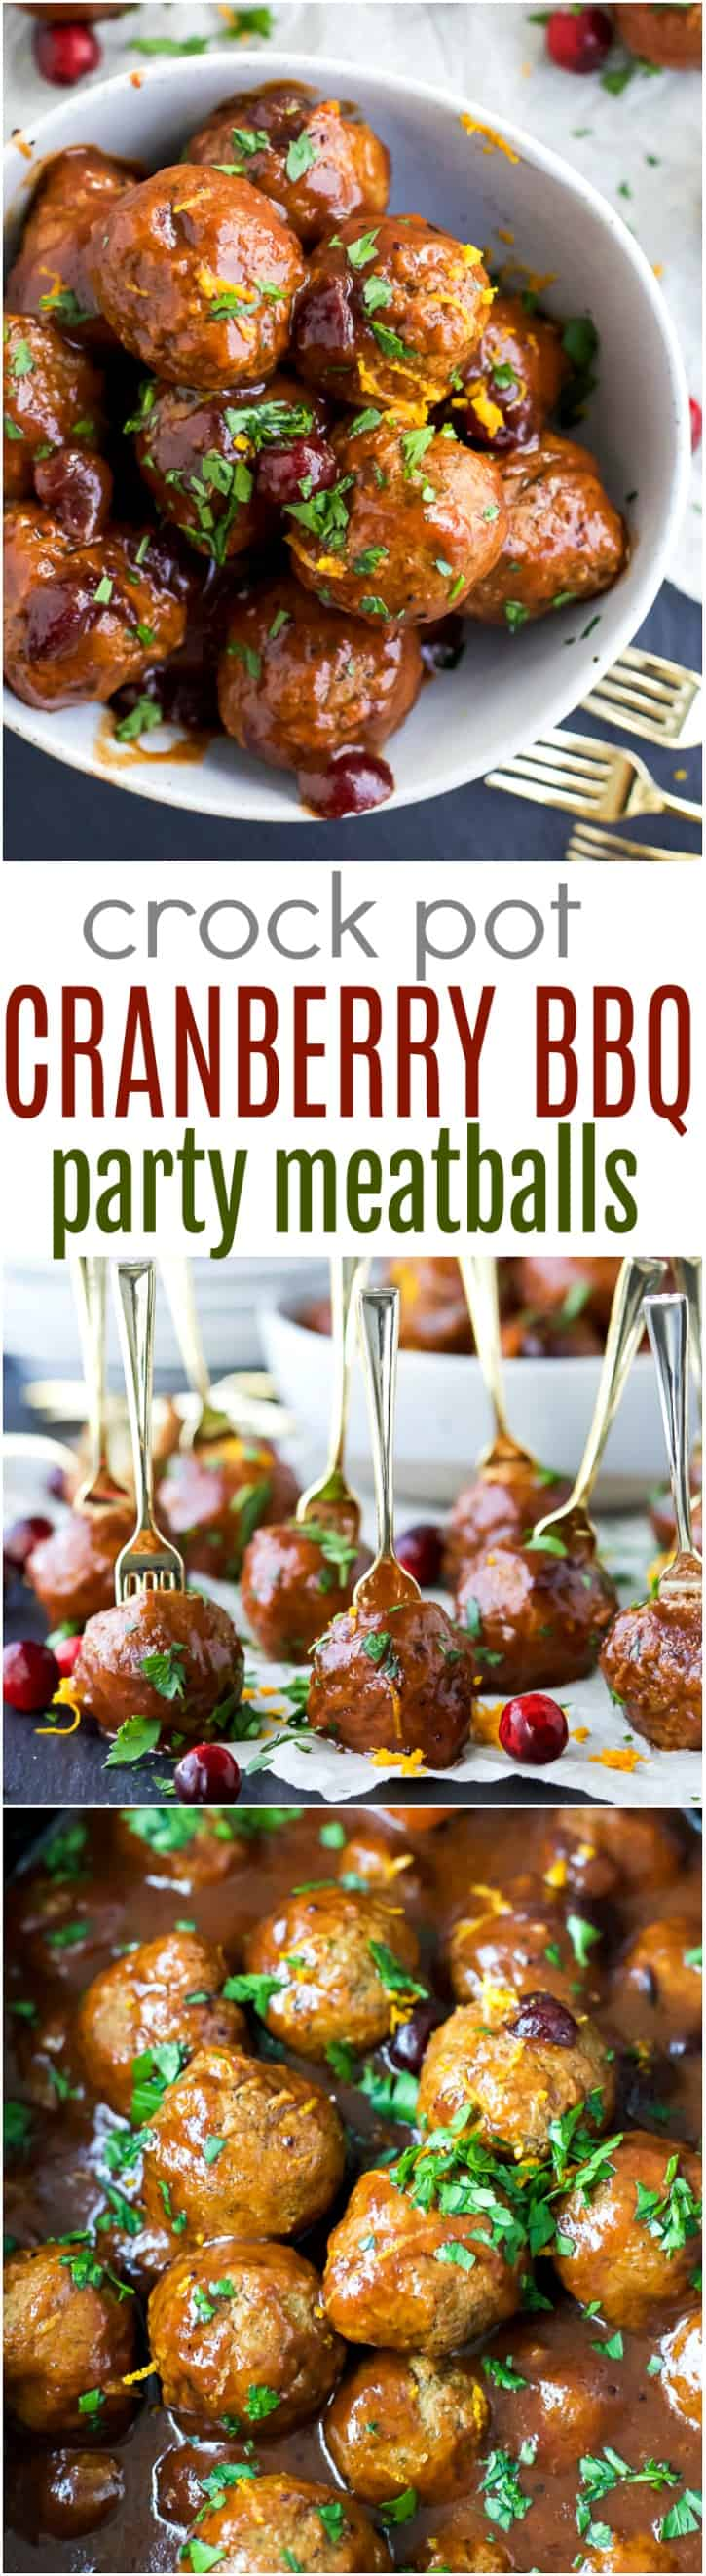 Crock Pot Cranberry BBQ Meatballs - the ultimate appetizer for the holidays. These party meatballs are covered in a sweet spicy Cranberry BBQ sauce that'll make you swoon!